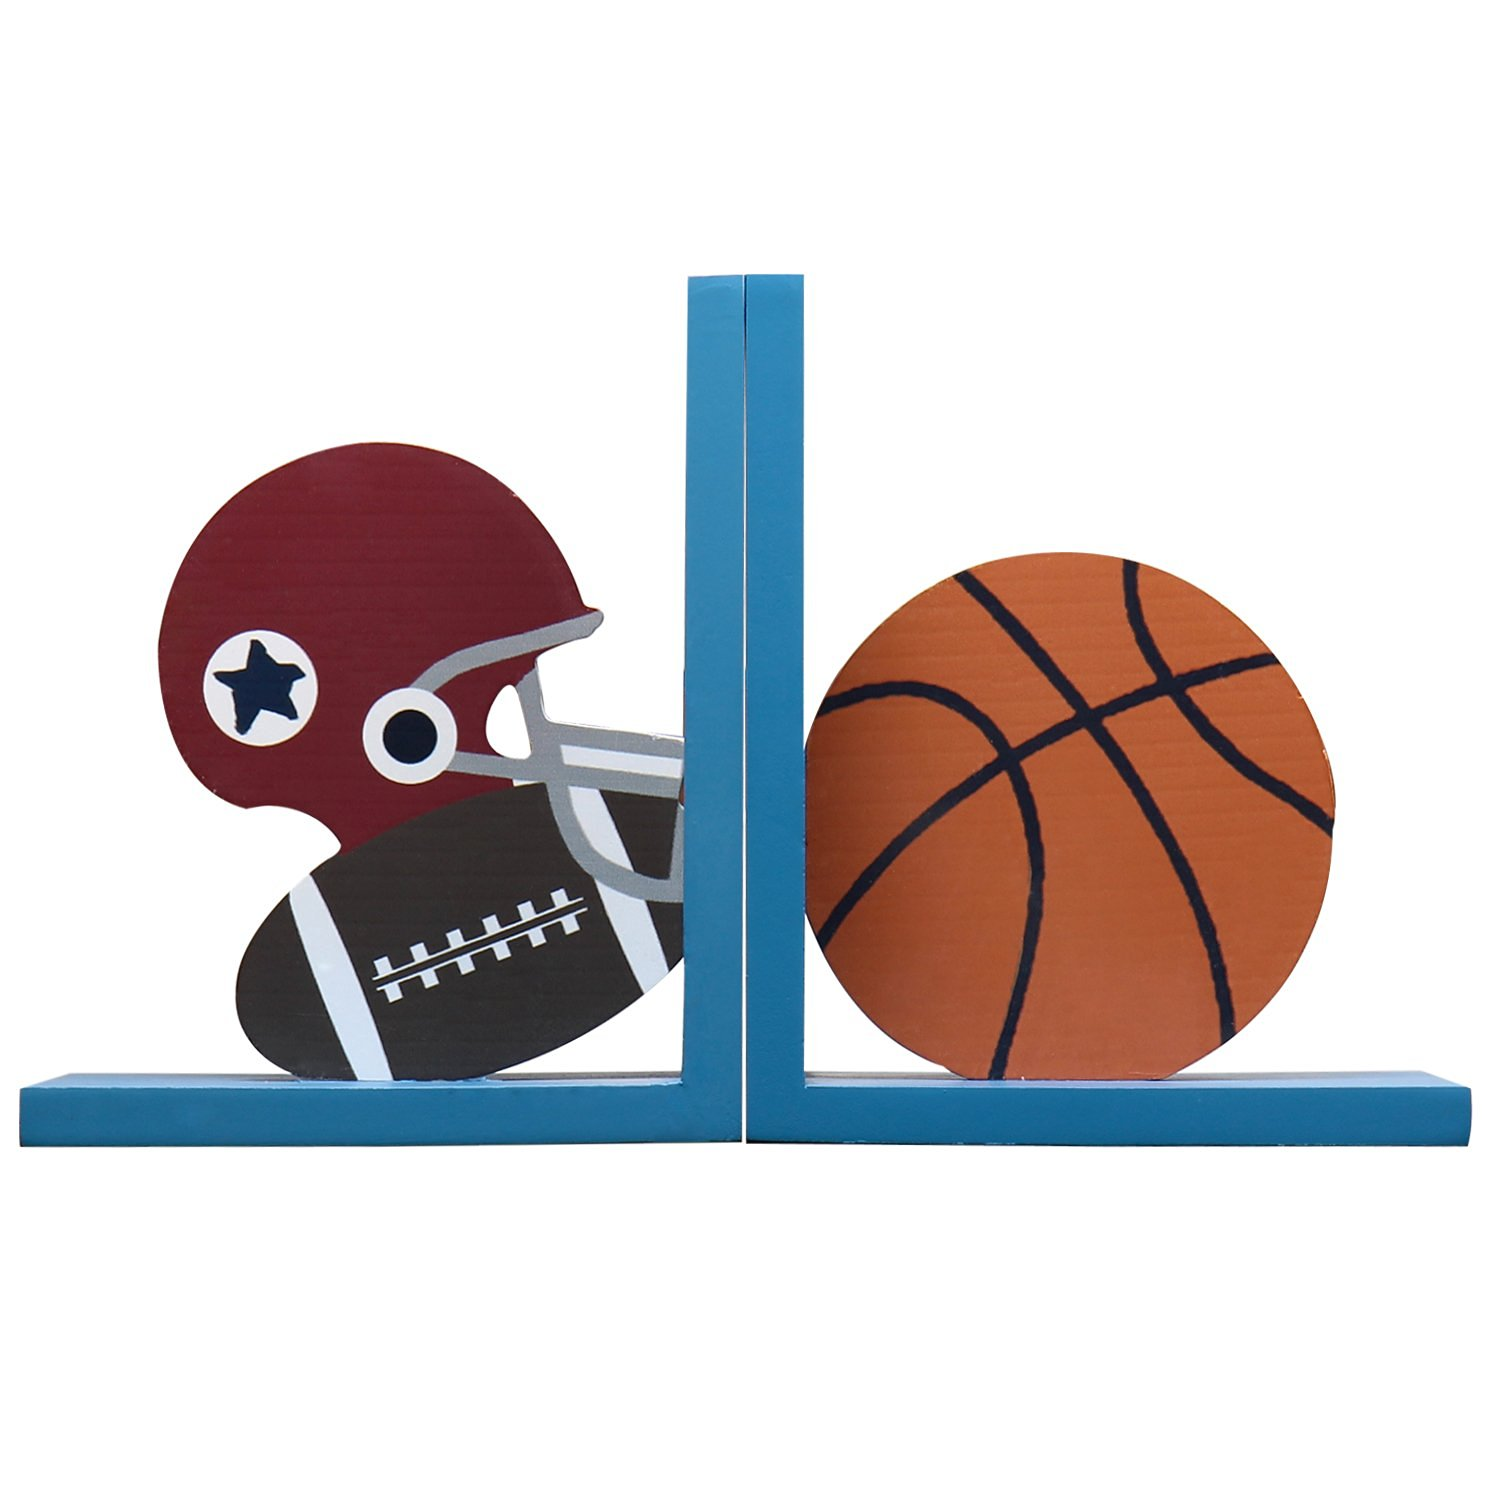 *Back-to-School Sale!* Adeco Set of 2 Decorative Child's Wood Bookends, Football and Basketball, Kid Bedroom, Bookshelf, Storybook